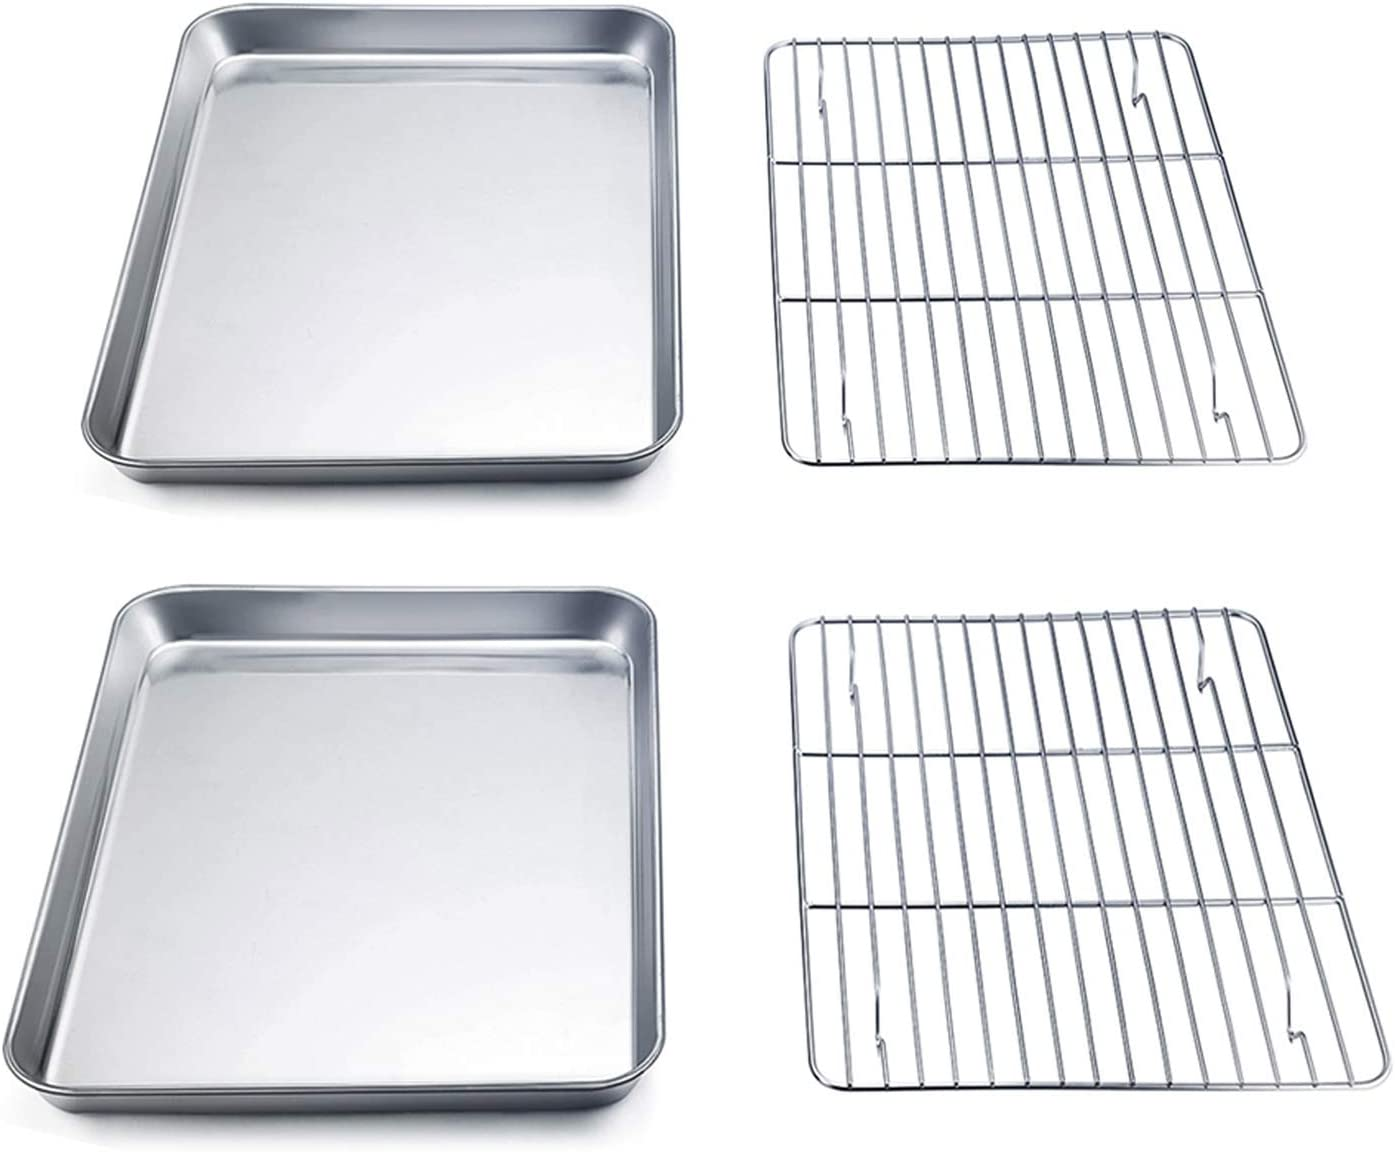 TeamFar Toaster Oven Pan with Rack Set (2 Pans + 2 Racks), 9'' x 7'' x 1'' Stainless Steel Compact Toaster Ovenware Pan with Cooling Rack, Healthy & Heavy Duty, Easy Clean & Dishwasher Safe - 4 Packs